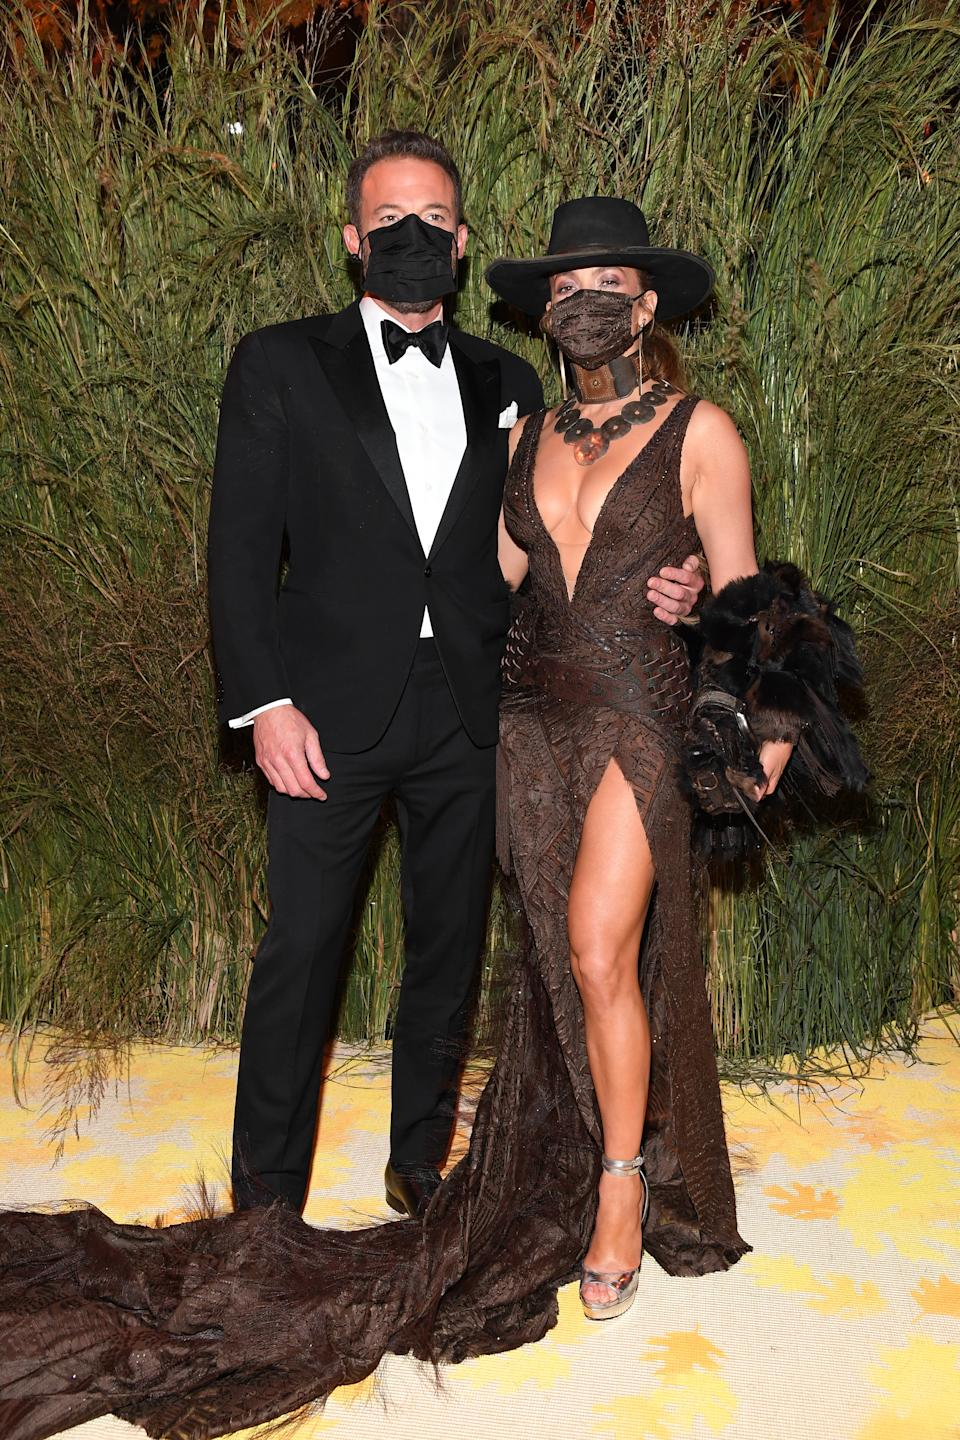 Ben Affleck and Jennifer Lopez attend The 2021 Met Gala Celebrating In America: A Lexicon Of Fashion at Metropolitan Museum of Art on September 13, 2021 in New York City. (Photo by Kevin Mazur/MG21/Getty Images for The Met Museum/Vogue )